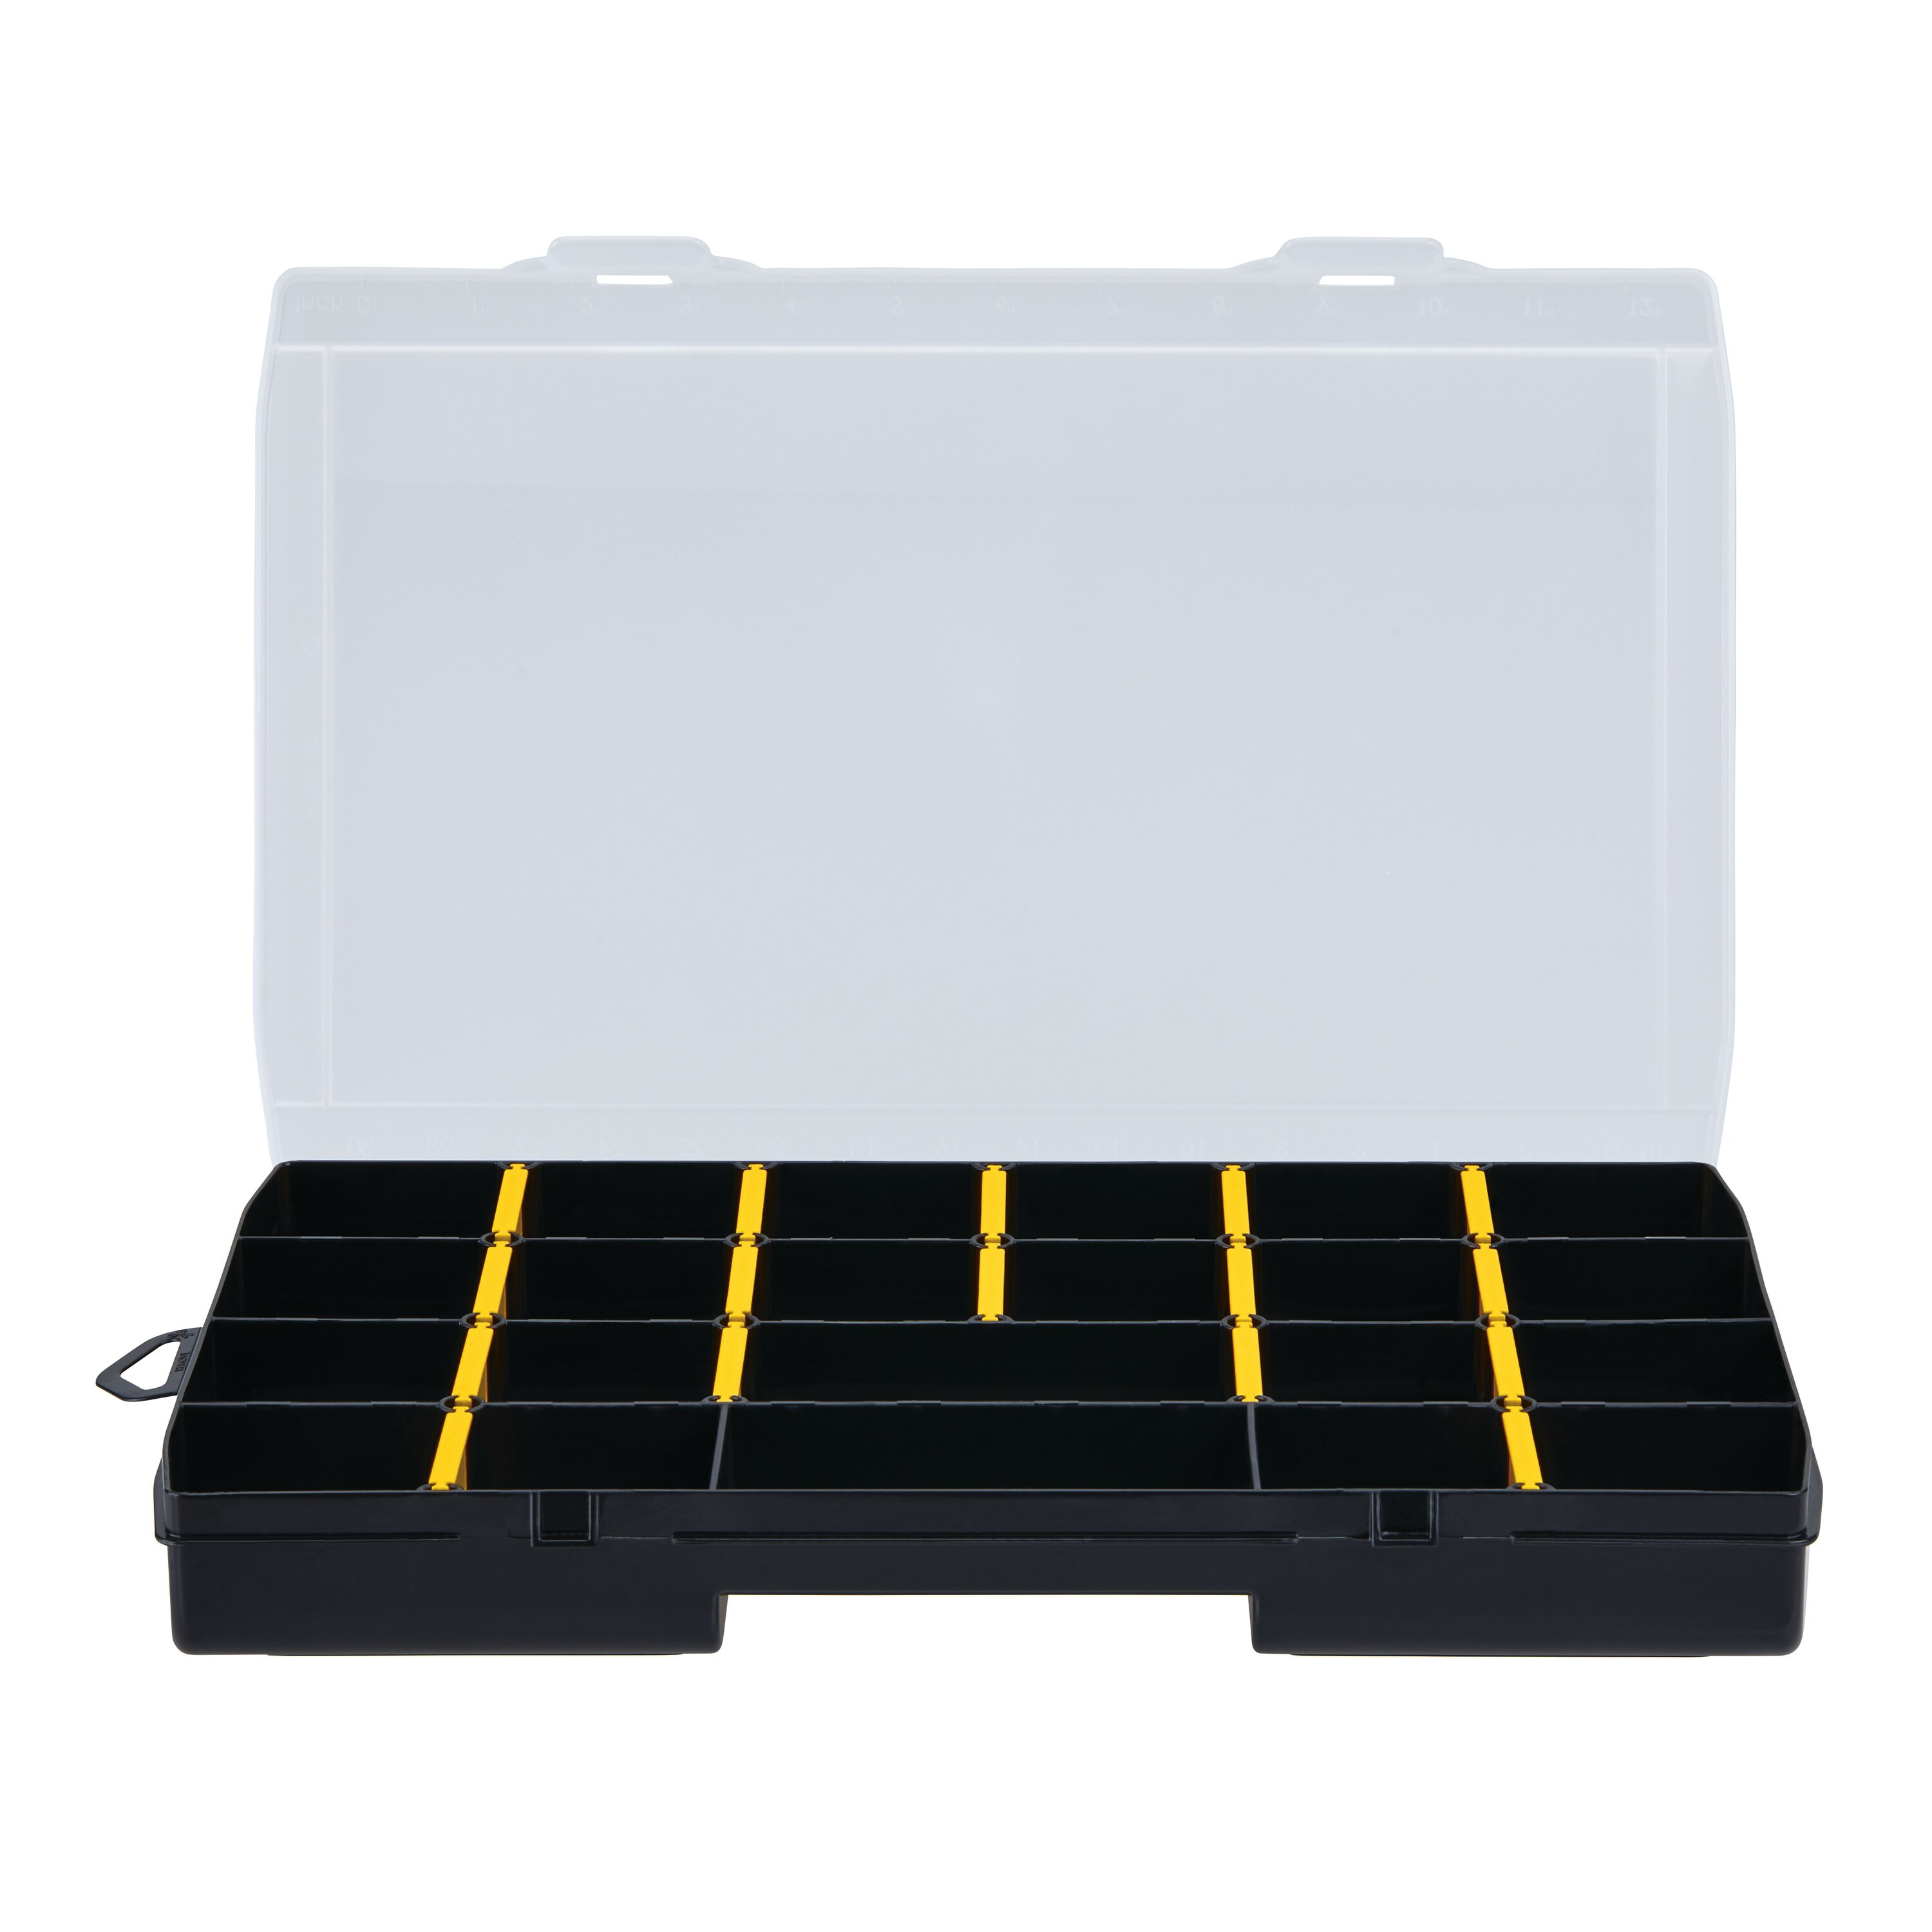 Stanley Tools - 22Compartment Tool Organizer - STST14114